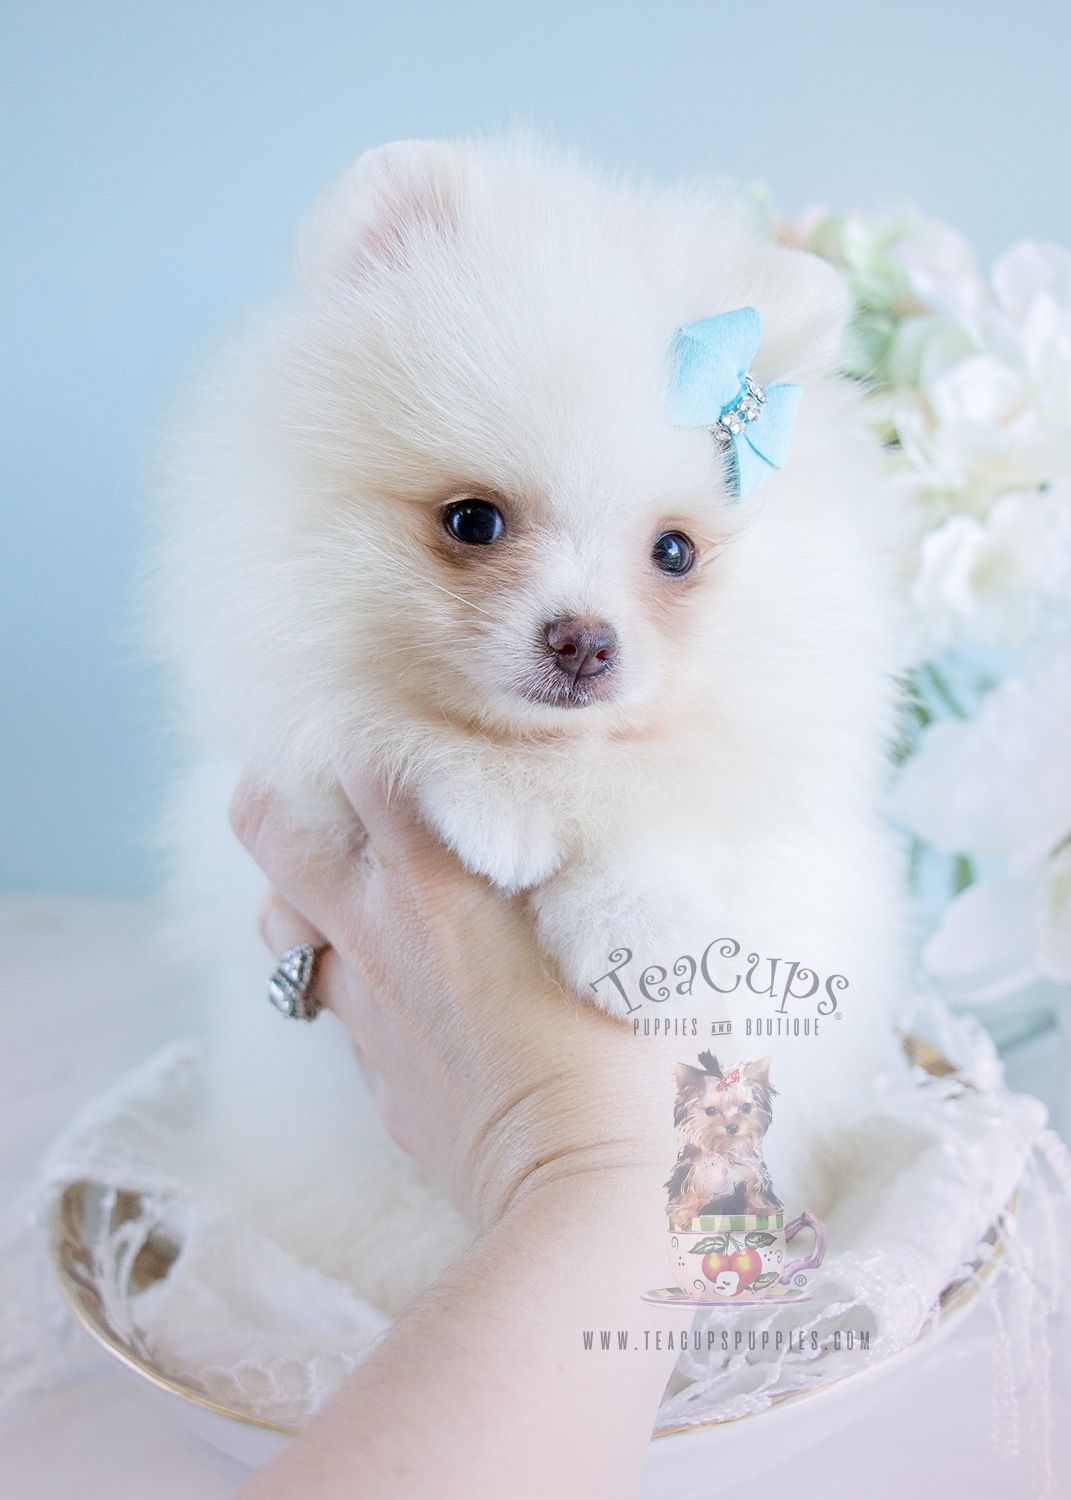 For Sale At Teacups Puppies White And Cream Pomeranian Puppies